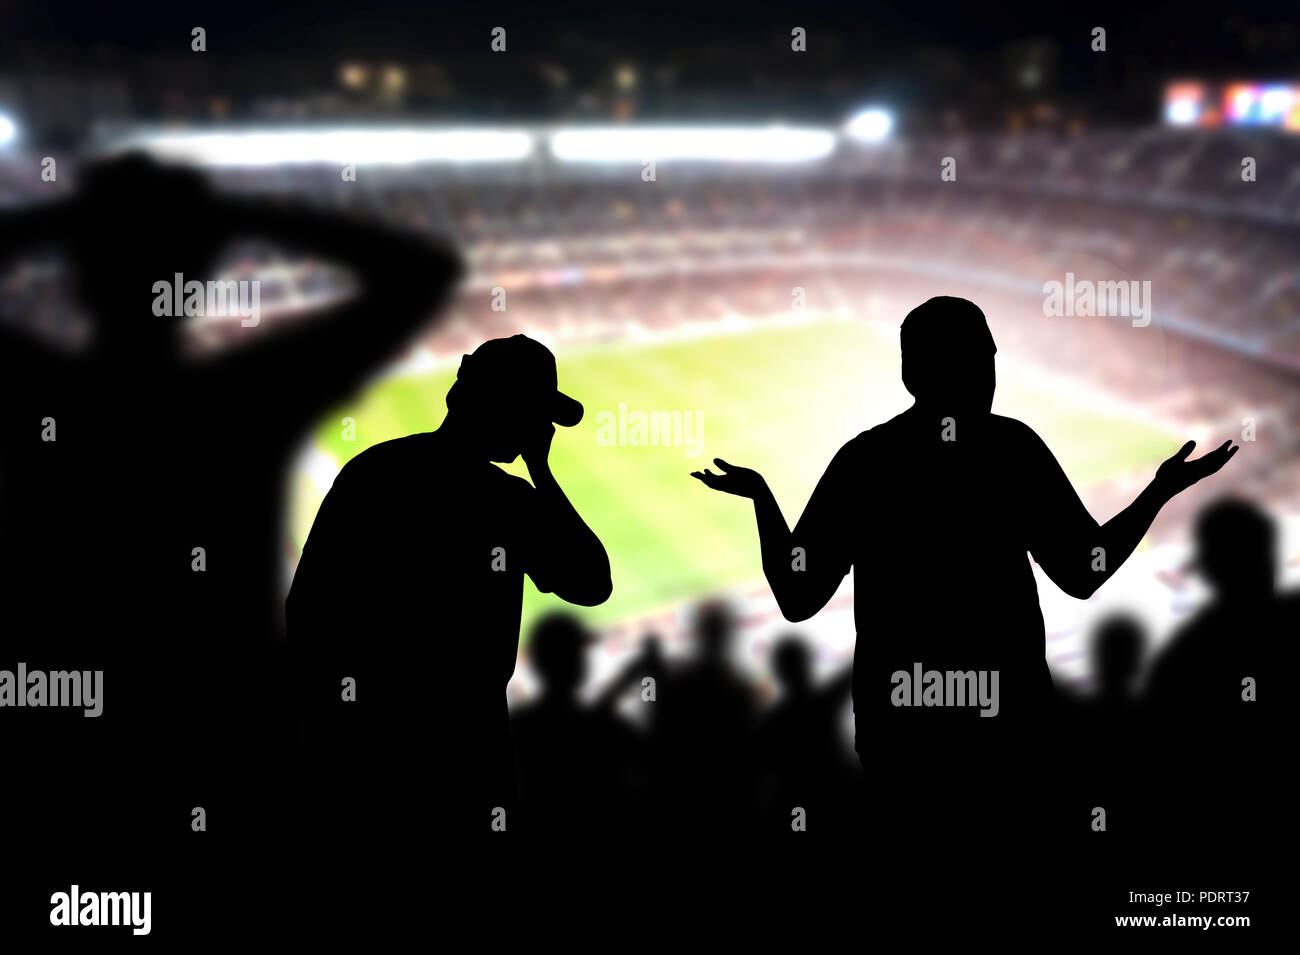 Sad football fans. Disappointed, angry and upset crowd in a match in a soccer stadium. Favourite team and club lost game. Devastated audience. - Stock Image